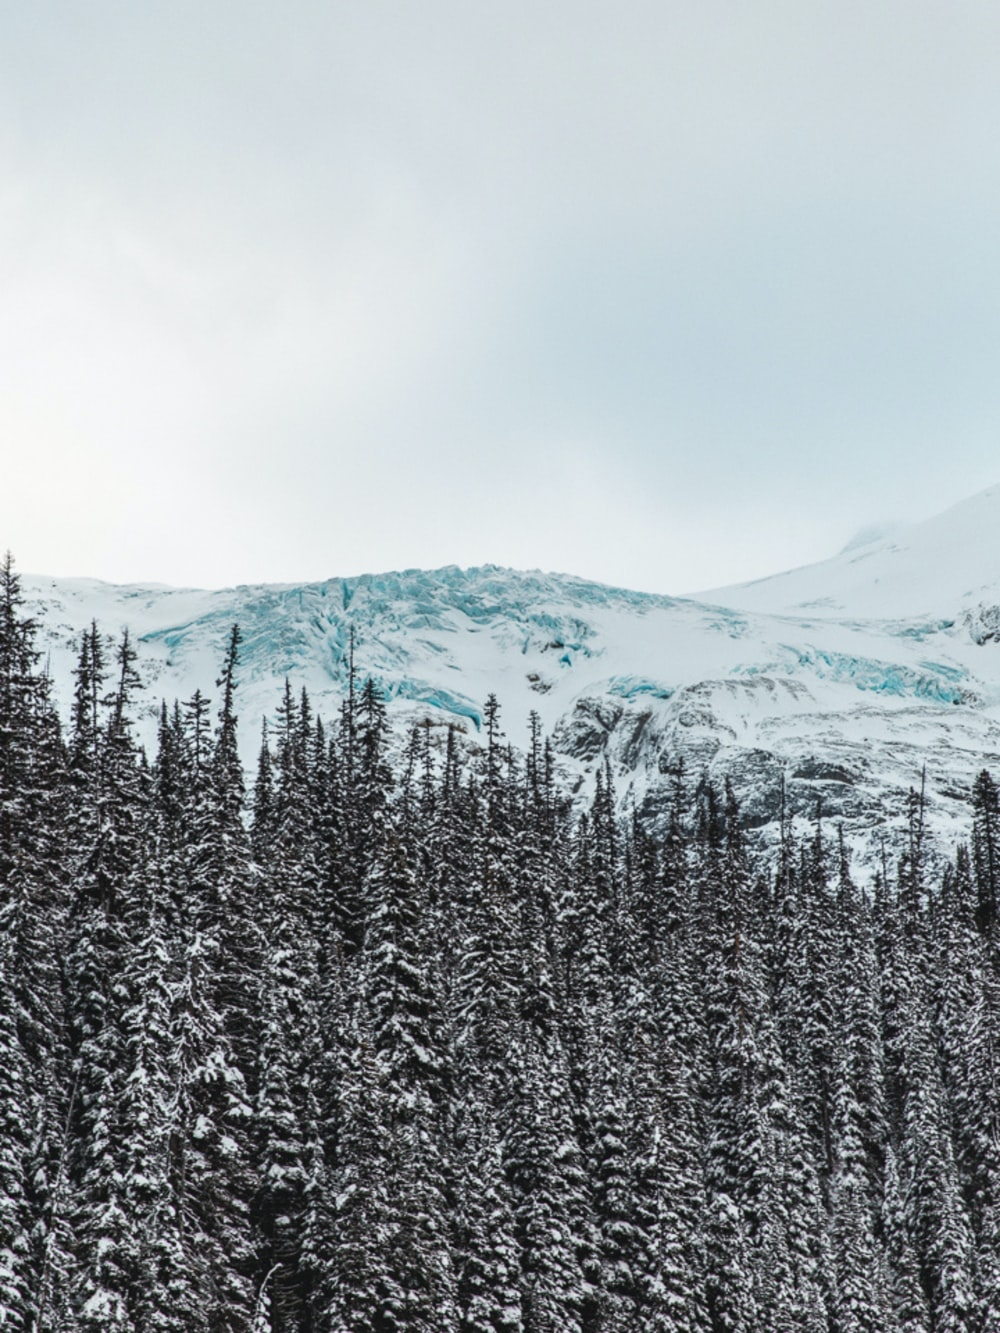 snow covered pine trees and mountains during daytime